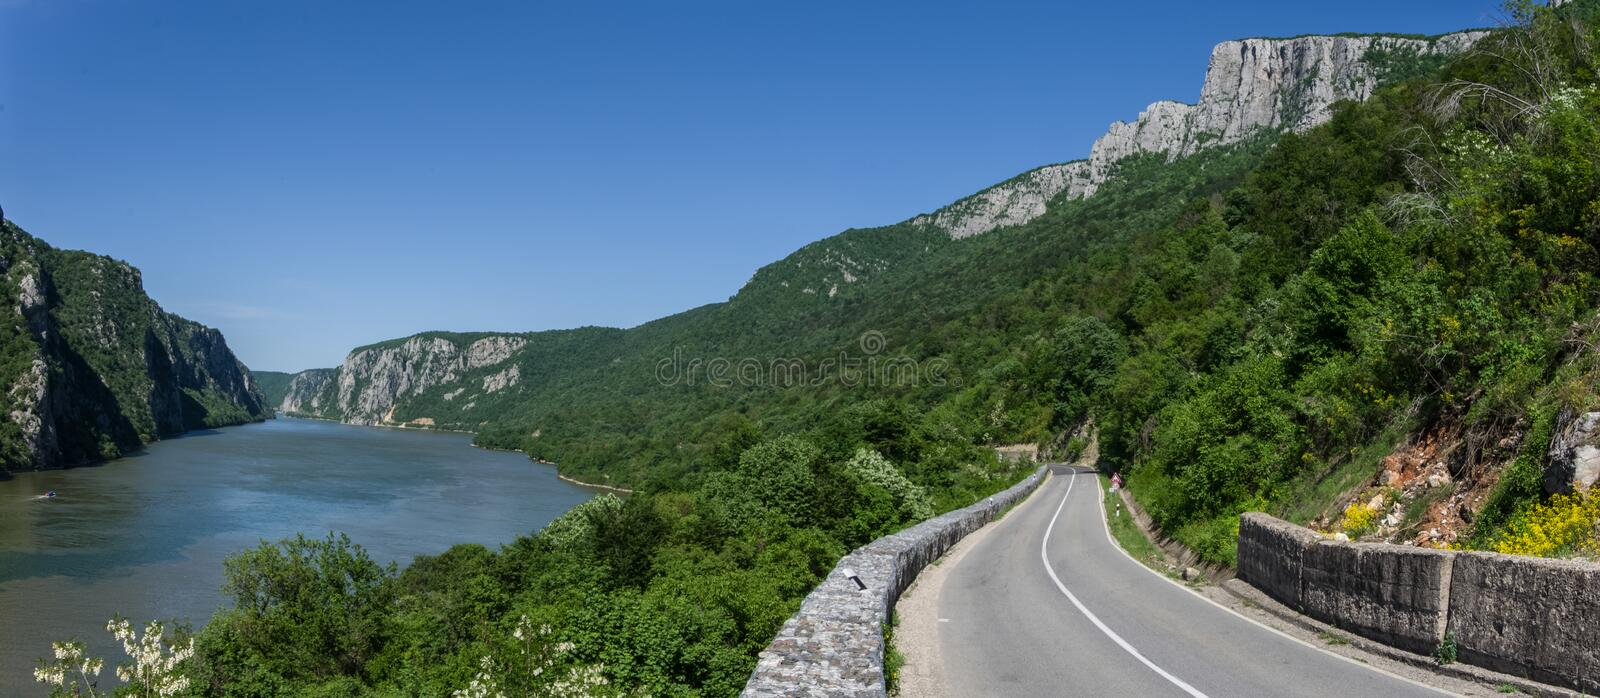 Danube border between Romania and Serbia. Landscape in the Danube Gorges.The narrowest part of the Gorge on the Danube between Se. Rbia and Romania, also known stock photography